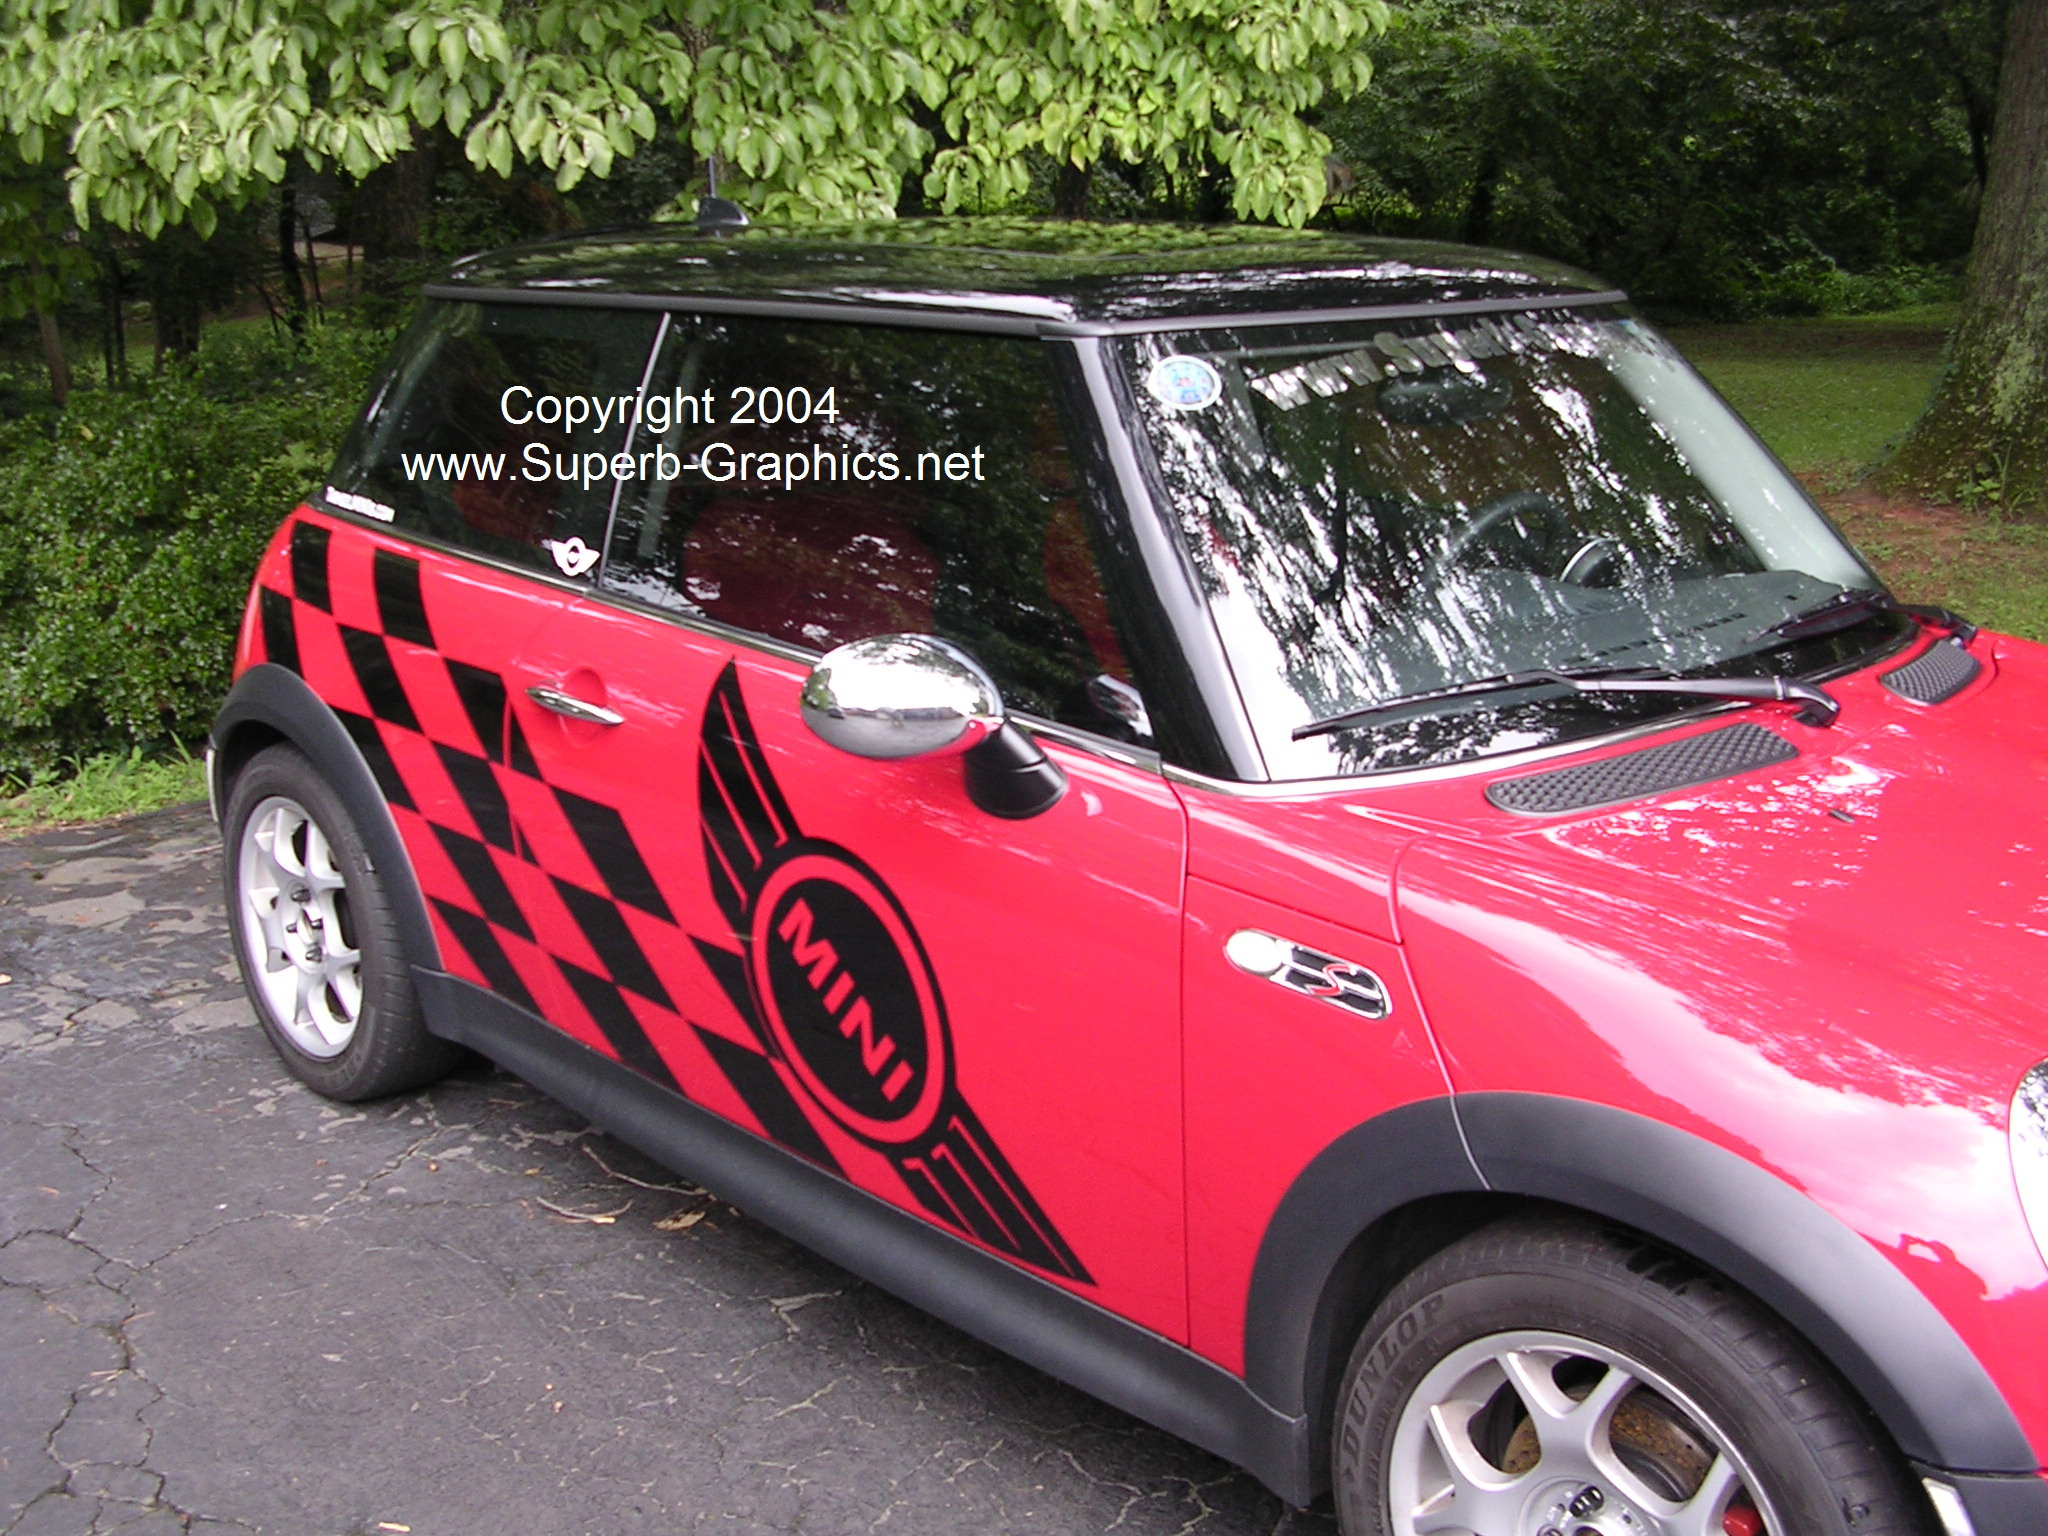 �Mini wing w/ Racing Check side graphics